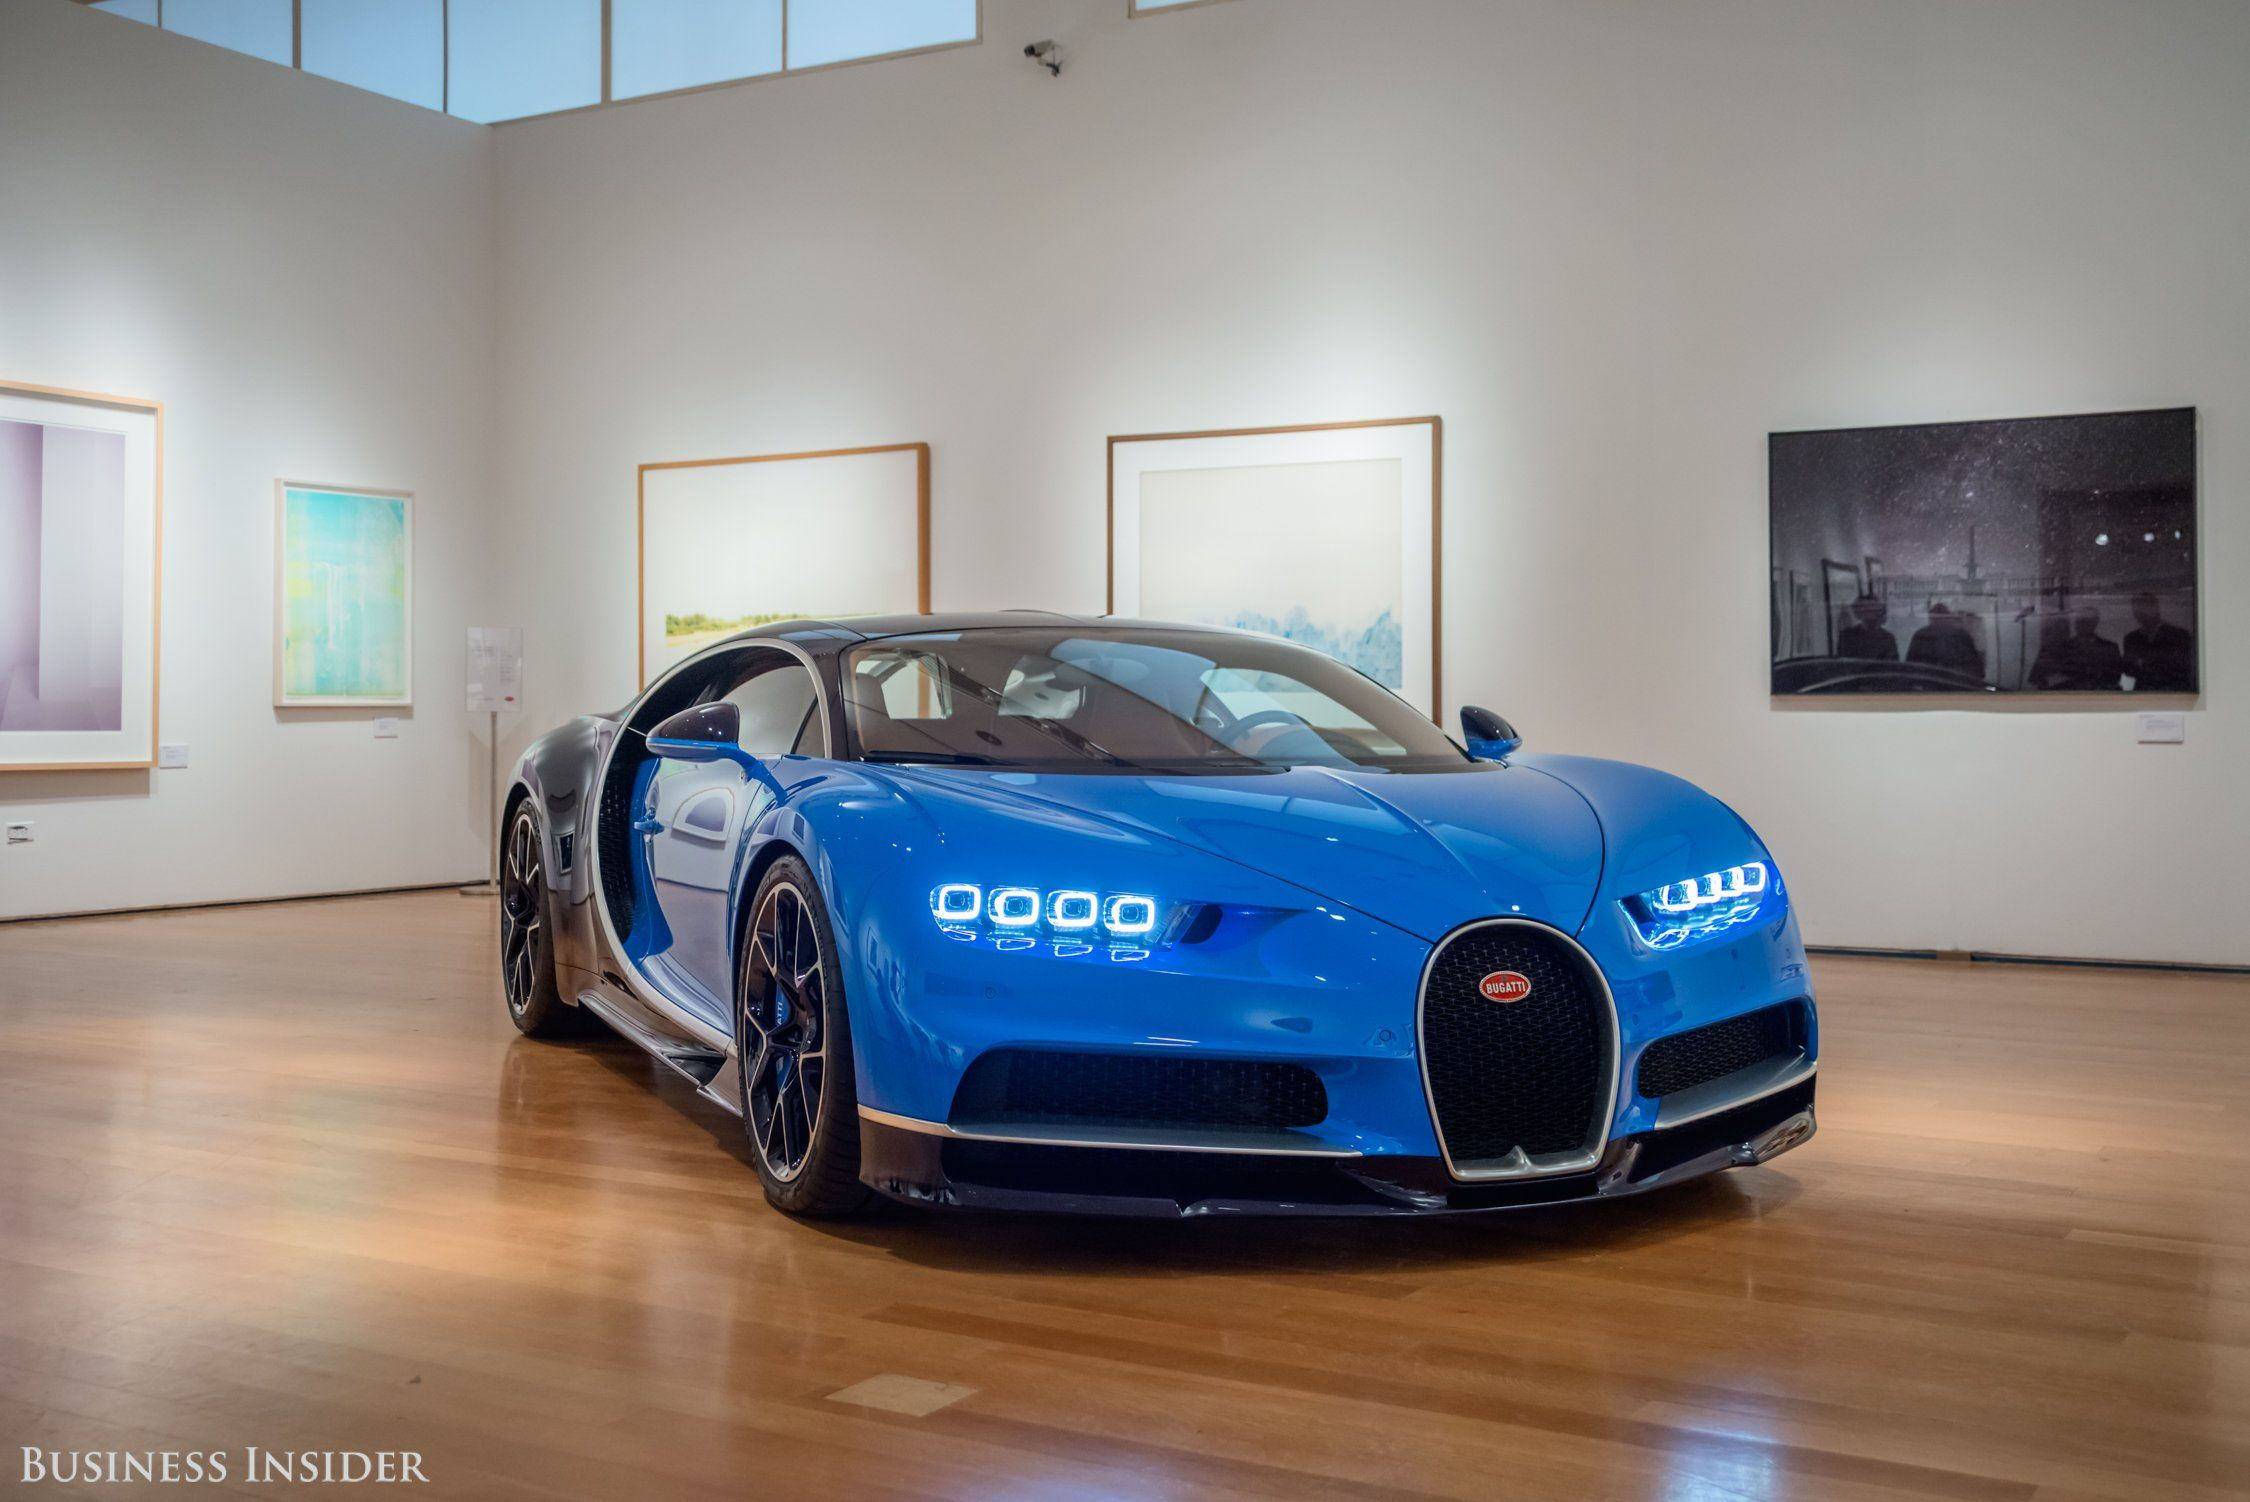 The new $2.6 million Bugatti is like no other car in the world   Cars